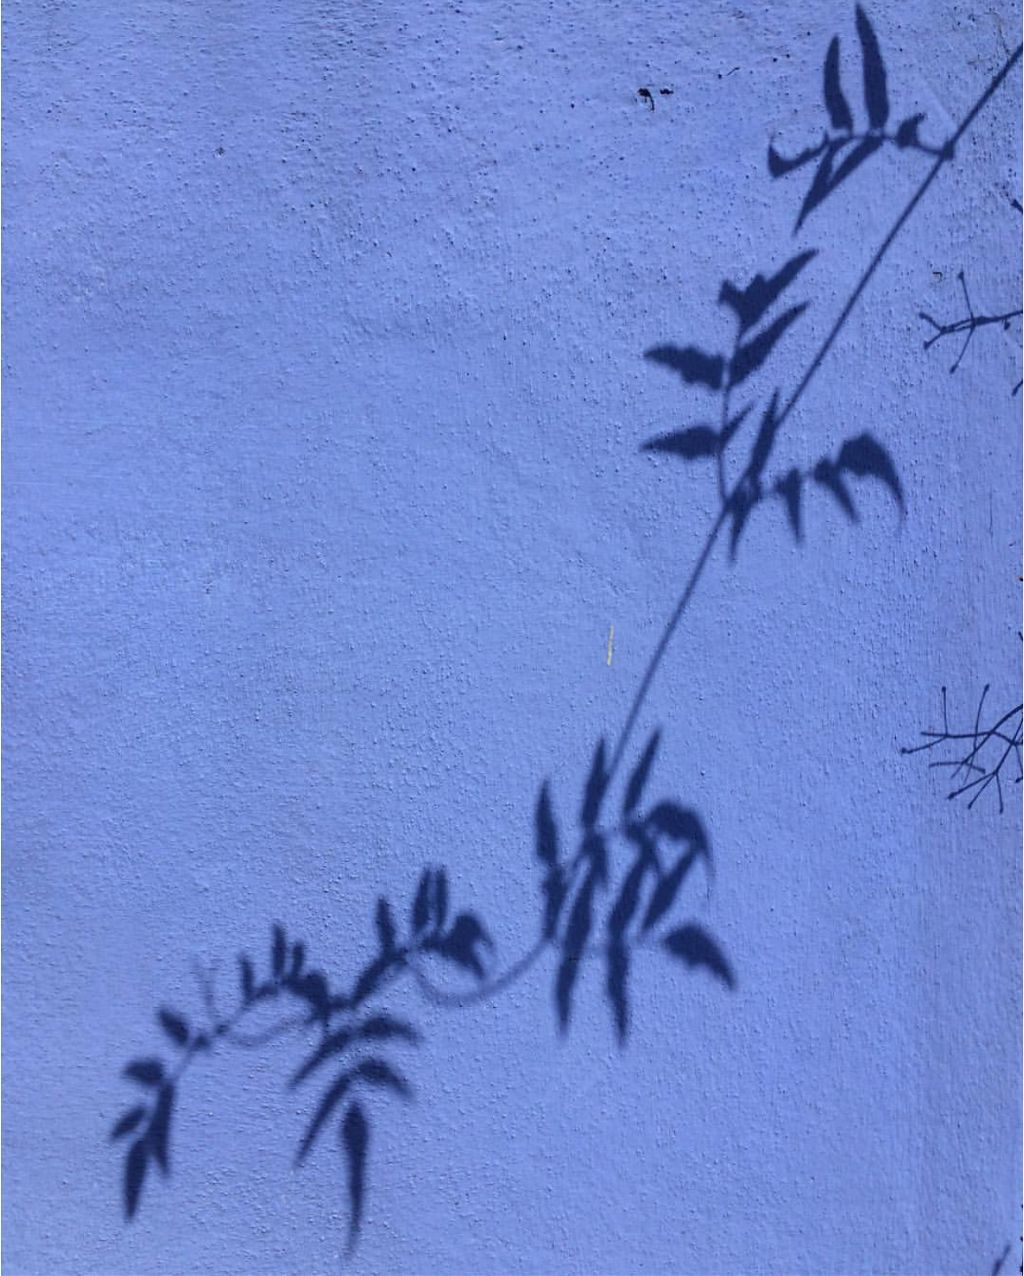 #housewall #bindweedbranch #shadow on the #wall #minimalism #urbannaturephotography                                           #freetoedit